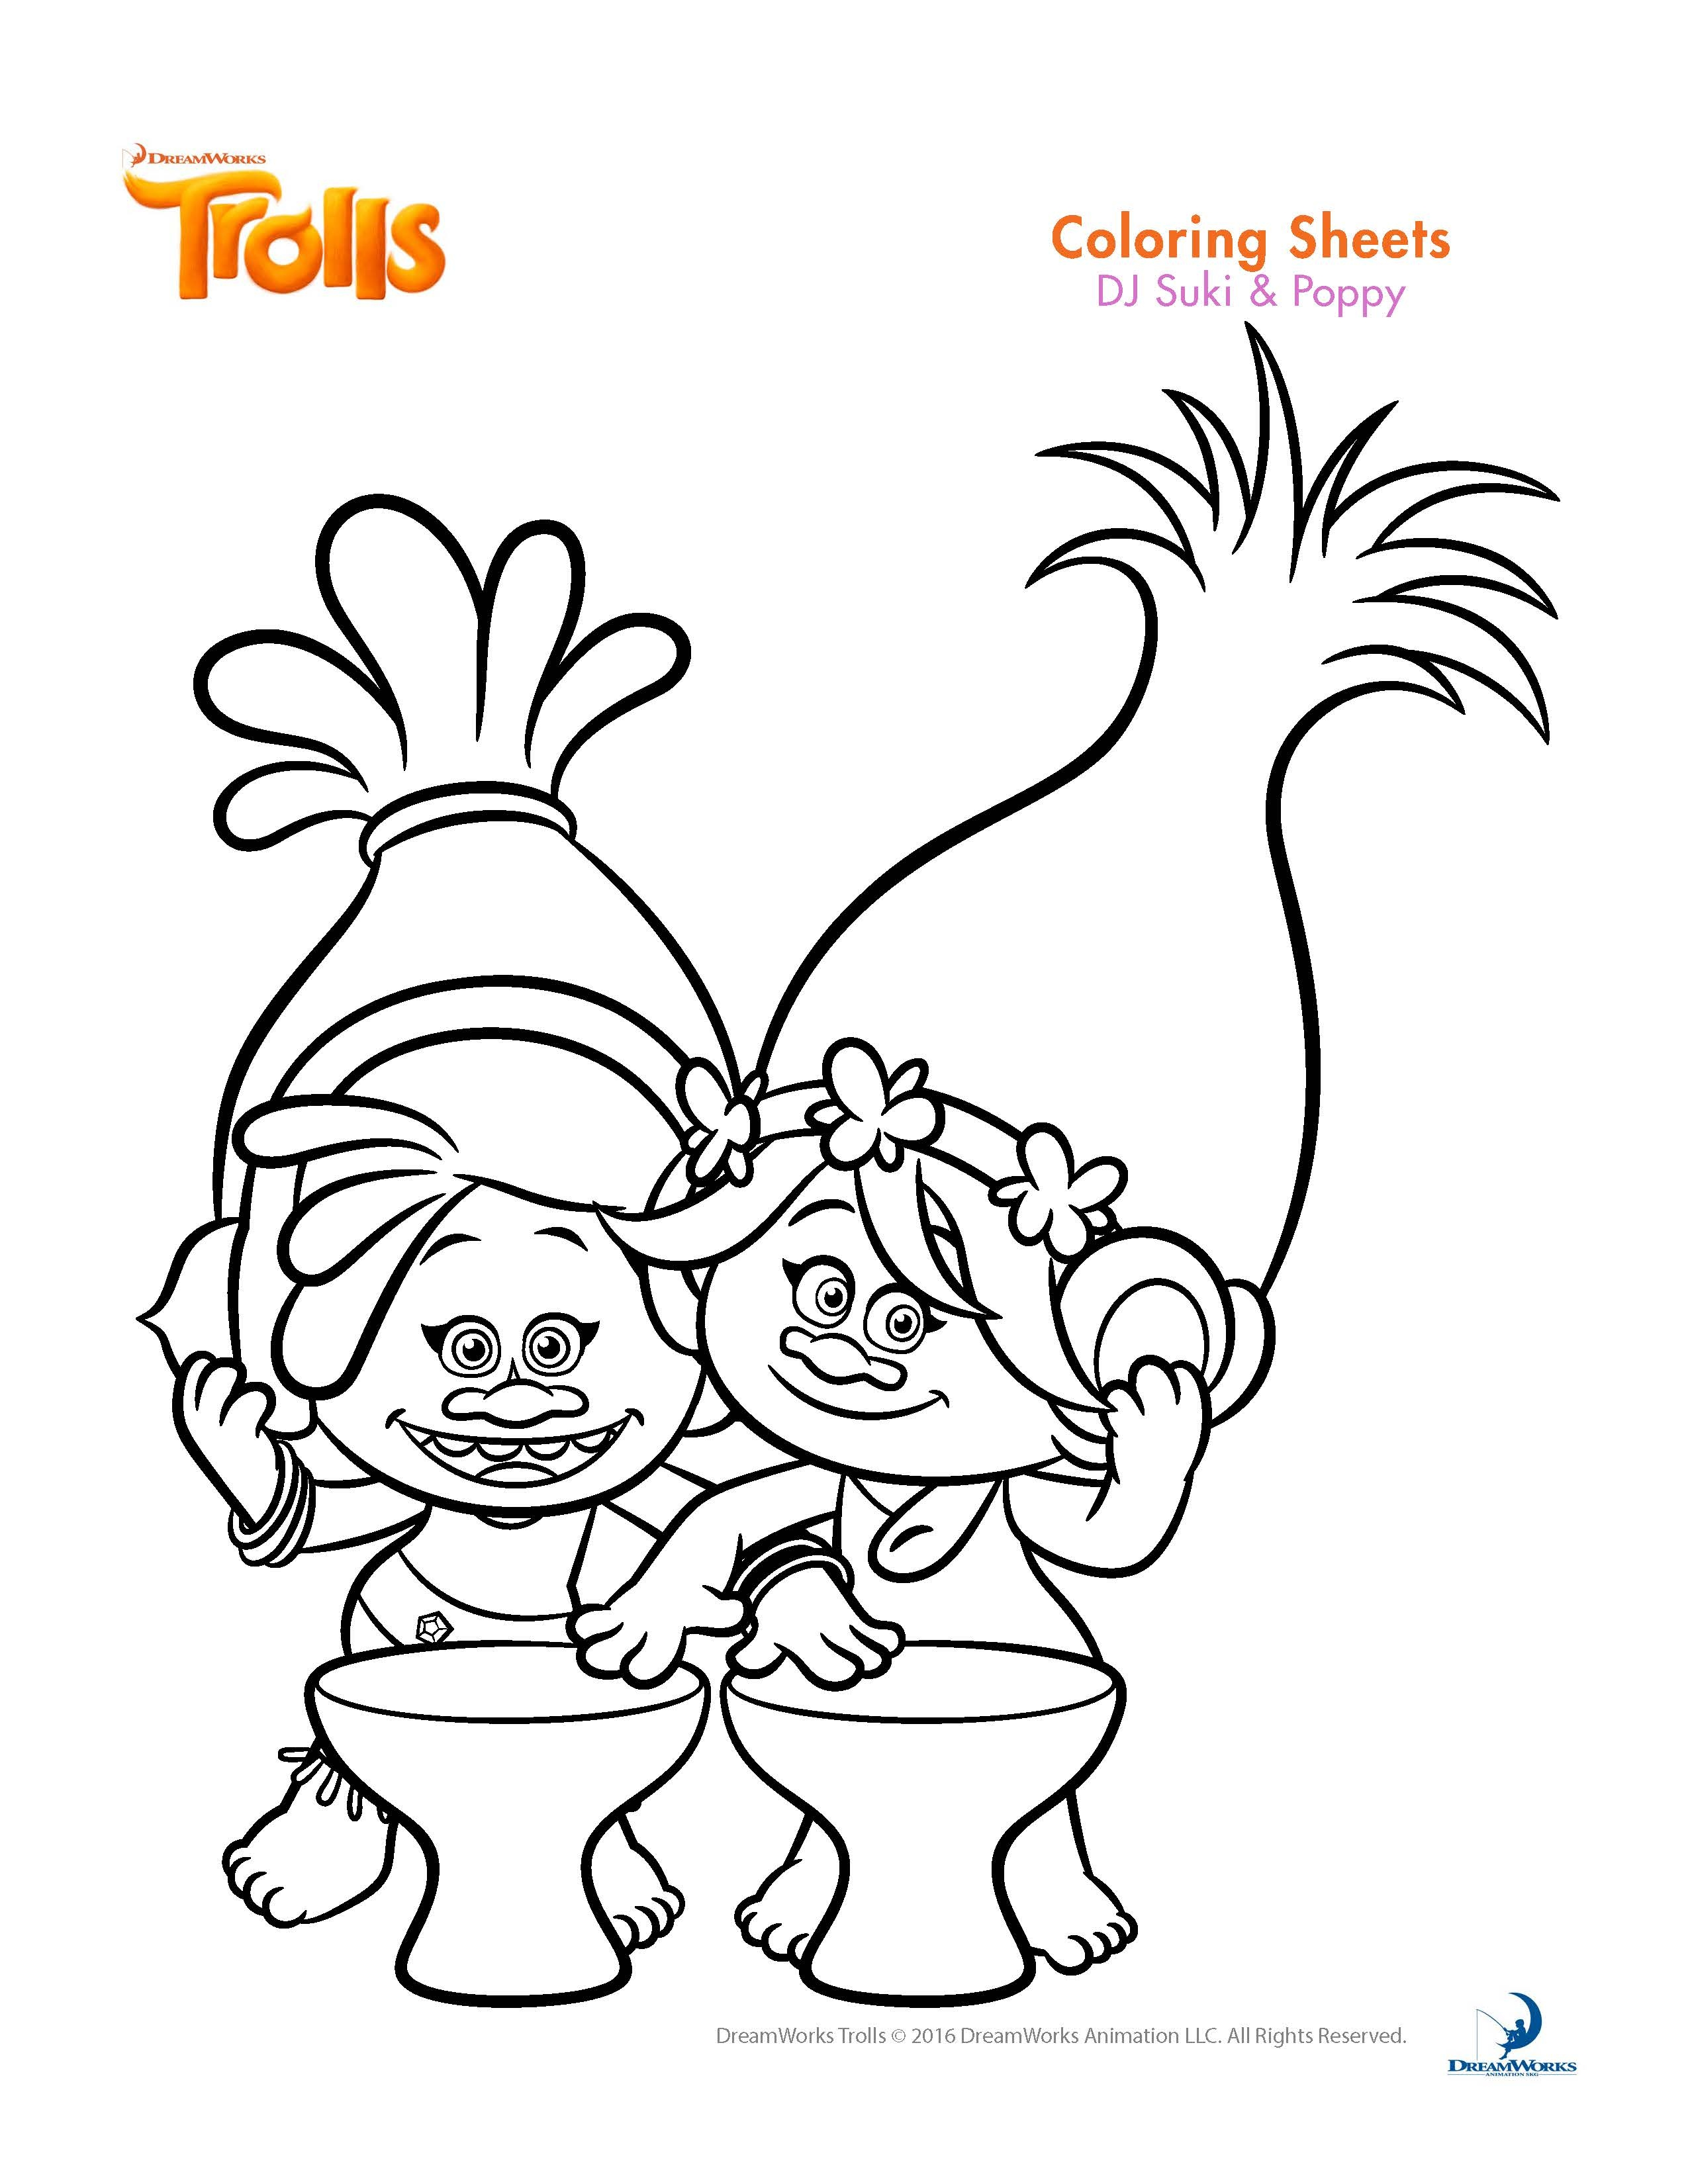 trolls coloring pages - trolls dreamworks coloring sheet sketch templates